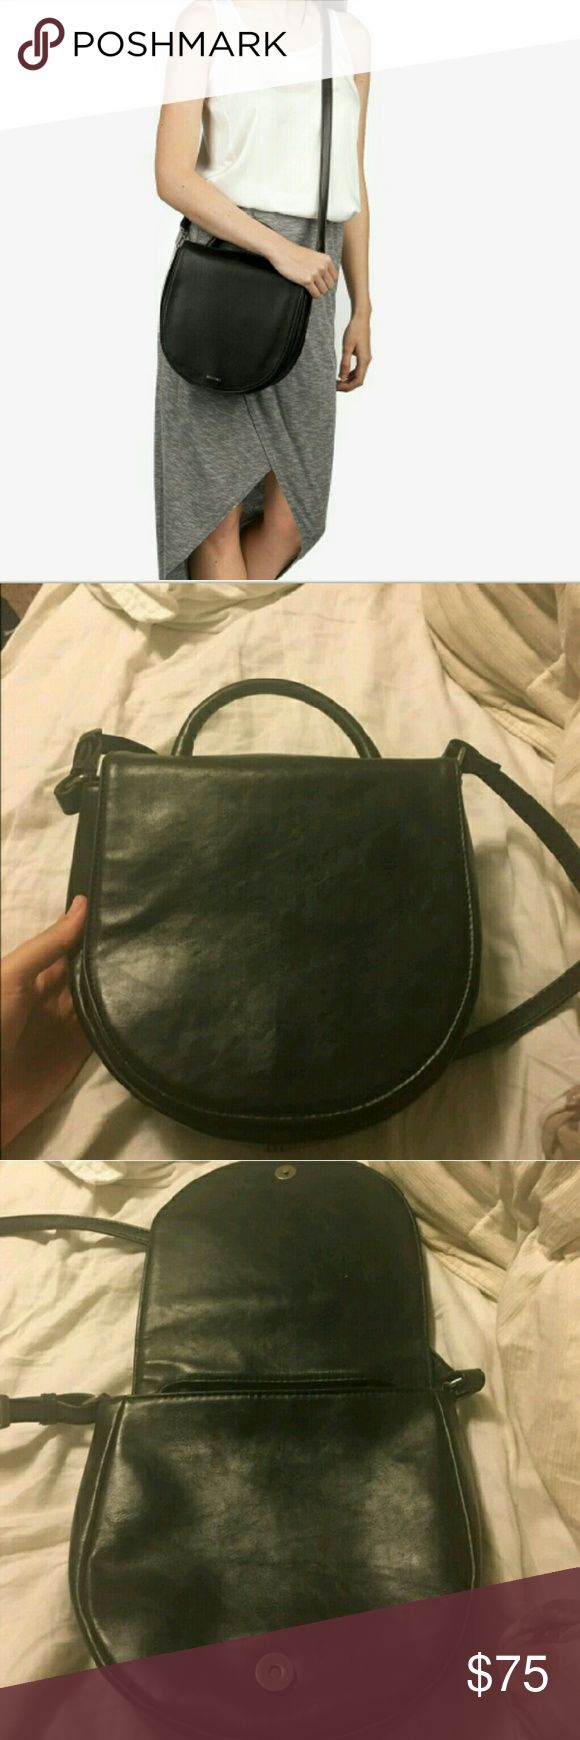 """Matt and Nat Vegan Leather Parabole Saddlebag Incredibly stylish and pretty utilitarian for its size. If you haven't tried it out, Matt and Nat is a great brand for those looking for high quality without the leather or the leather price tag! Sold at Urban Outfitters, Nordstrom, and other fine retailers. This bag has been loved, but aside from some wrinkling (pictured), it's like new!  9"""" x 8.5"""" x 3.25"""" with a 19-24"""" adjustable strap. Matt and Nat Bags Crossbody Bags"""